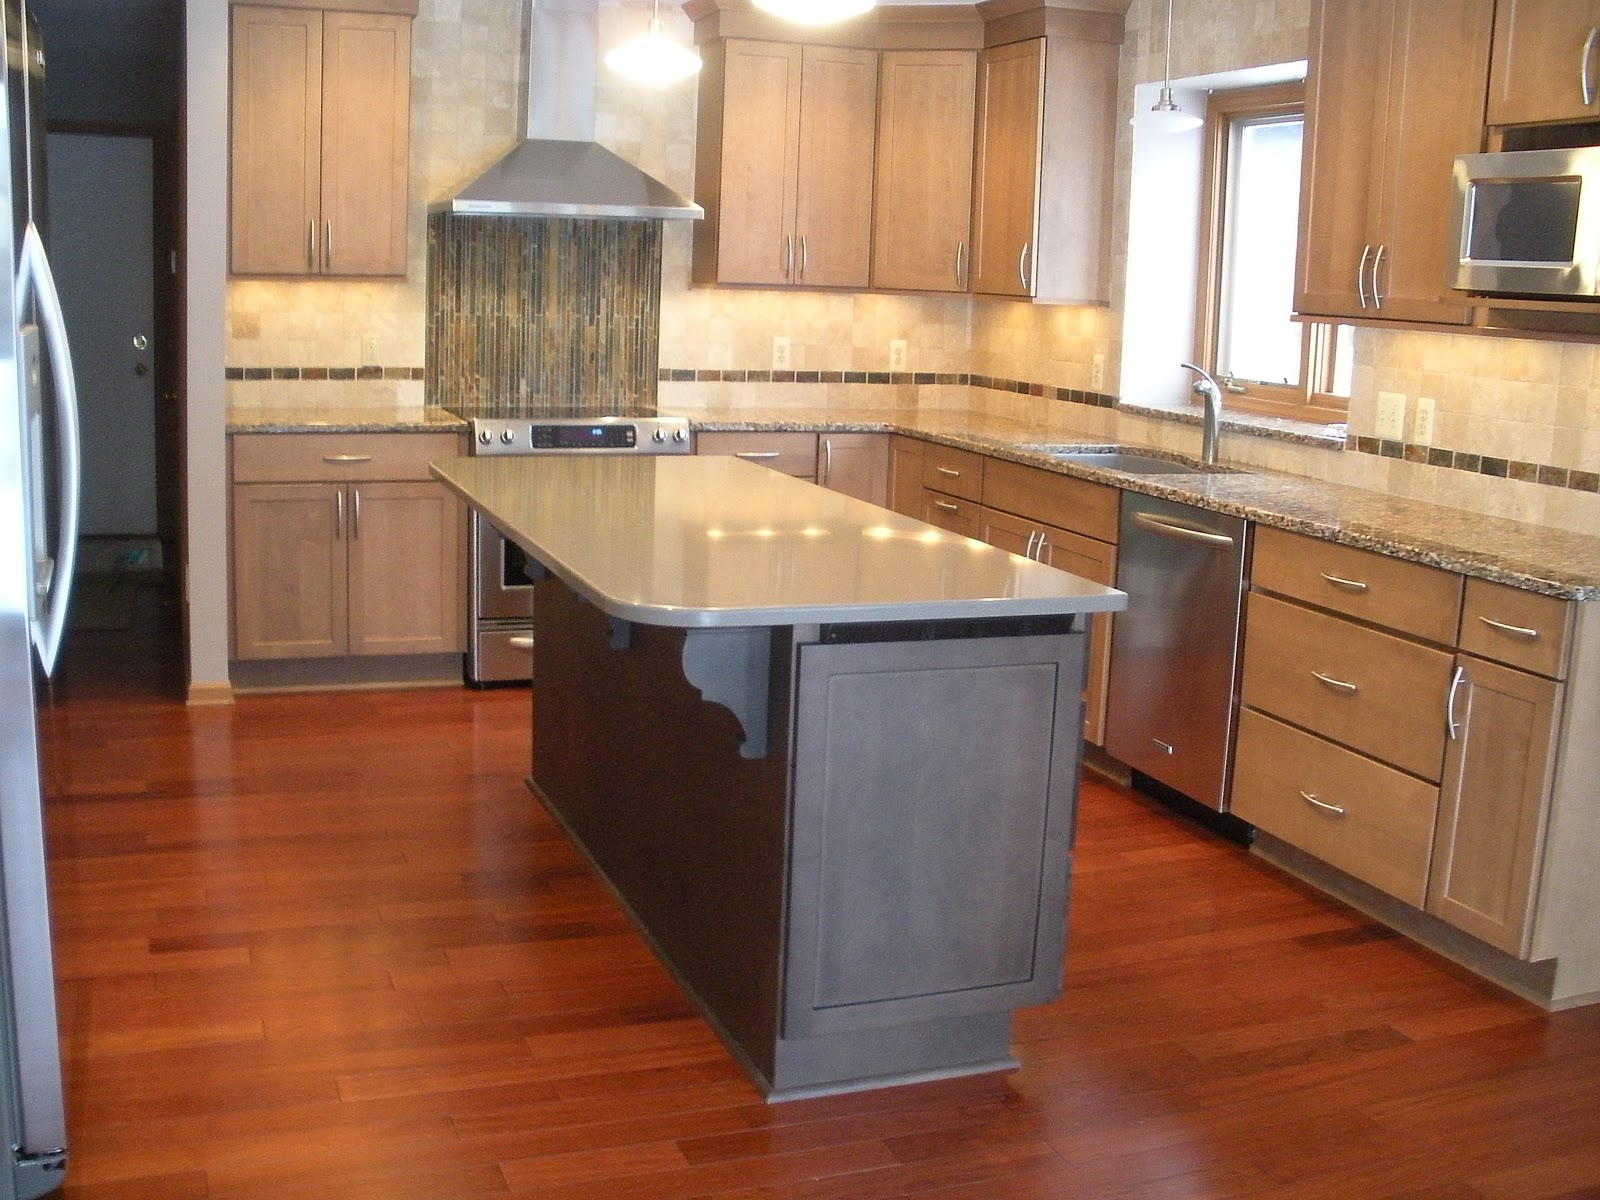 cream shaker style kitchen cabinet doors - Cream Kitchen Cabinet Doors